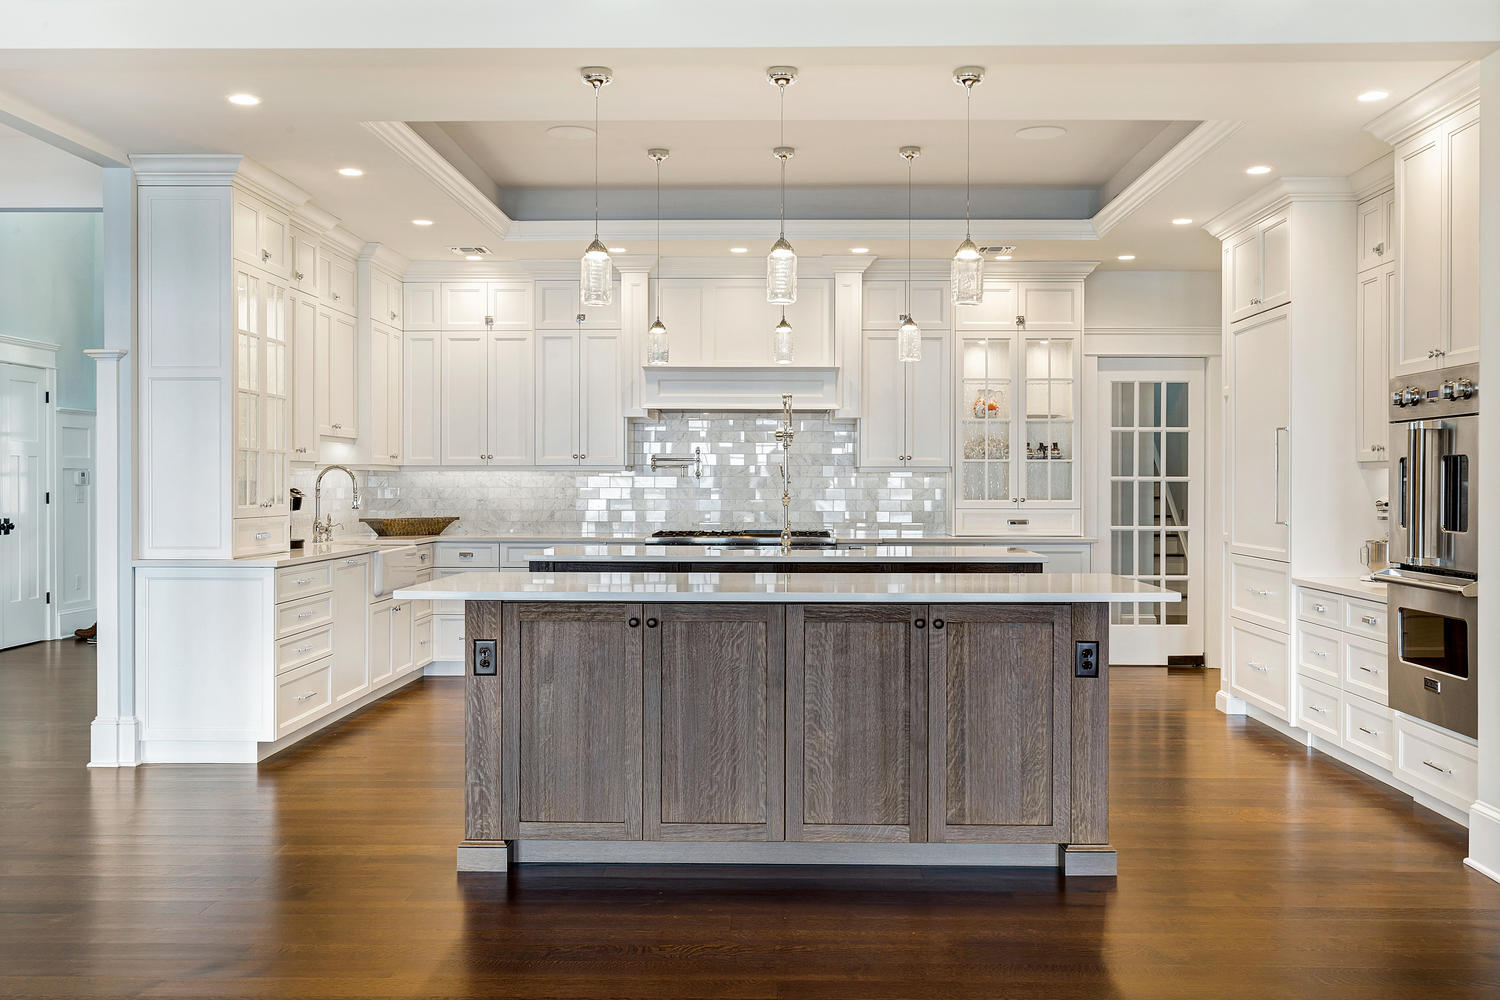 Kitchen Cabinetry 2 kitchen cabinets nj Ocean Inspired Kitchen Islands